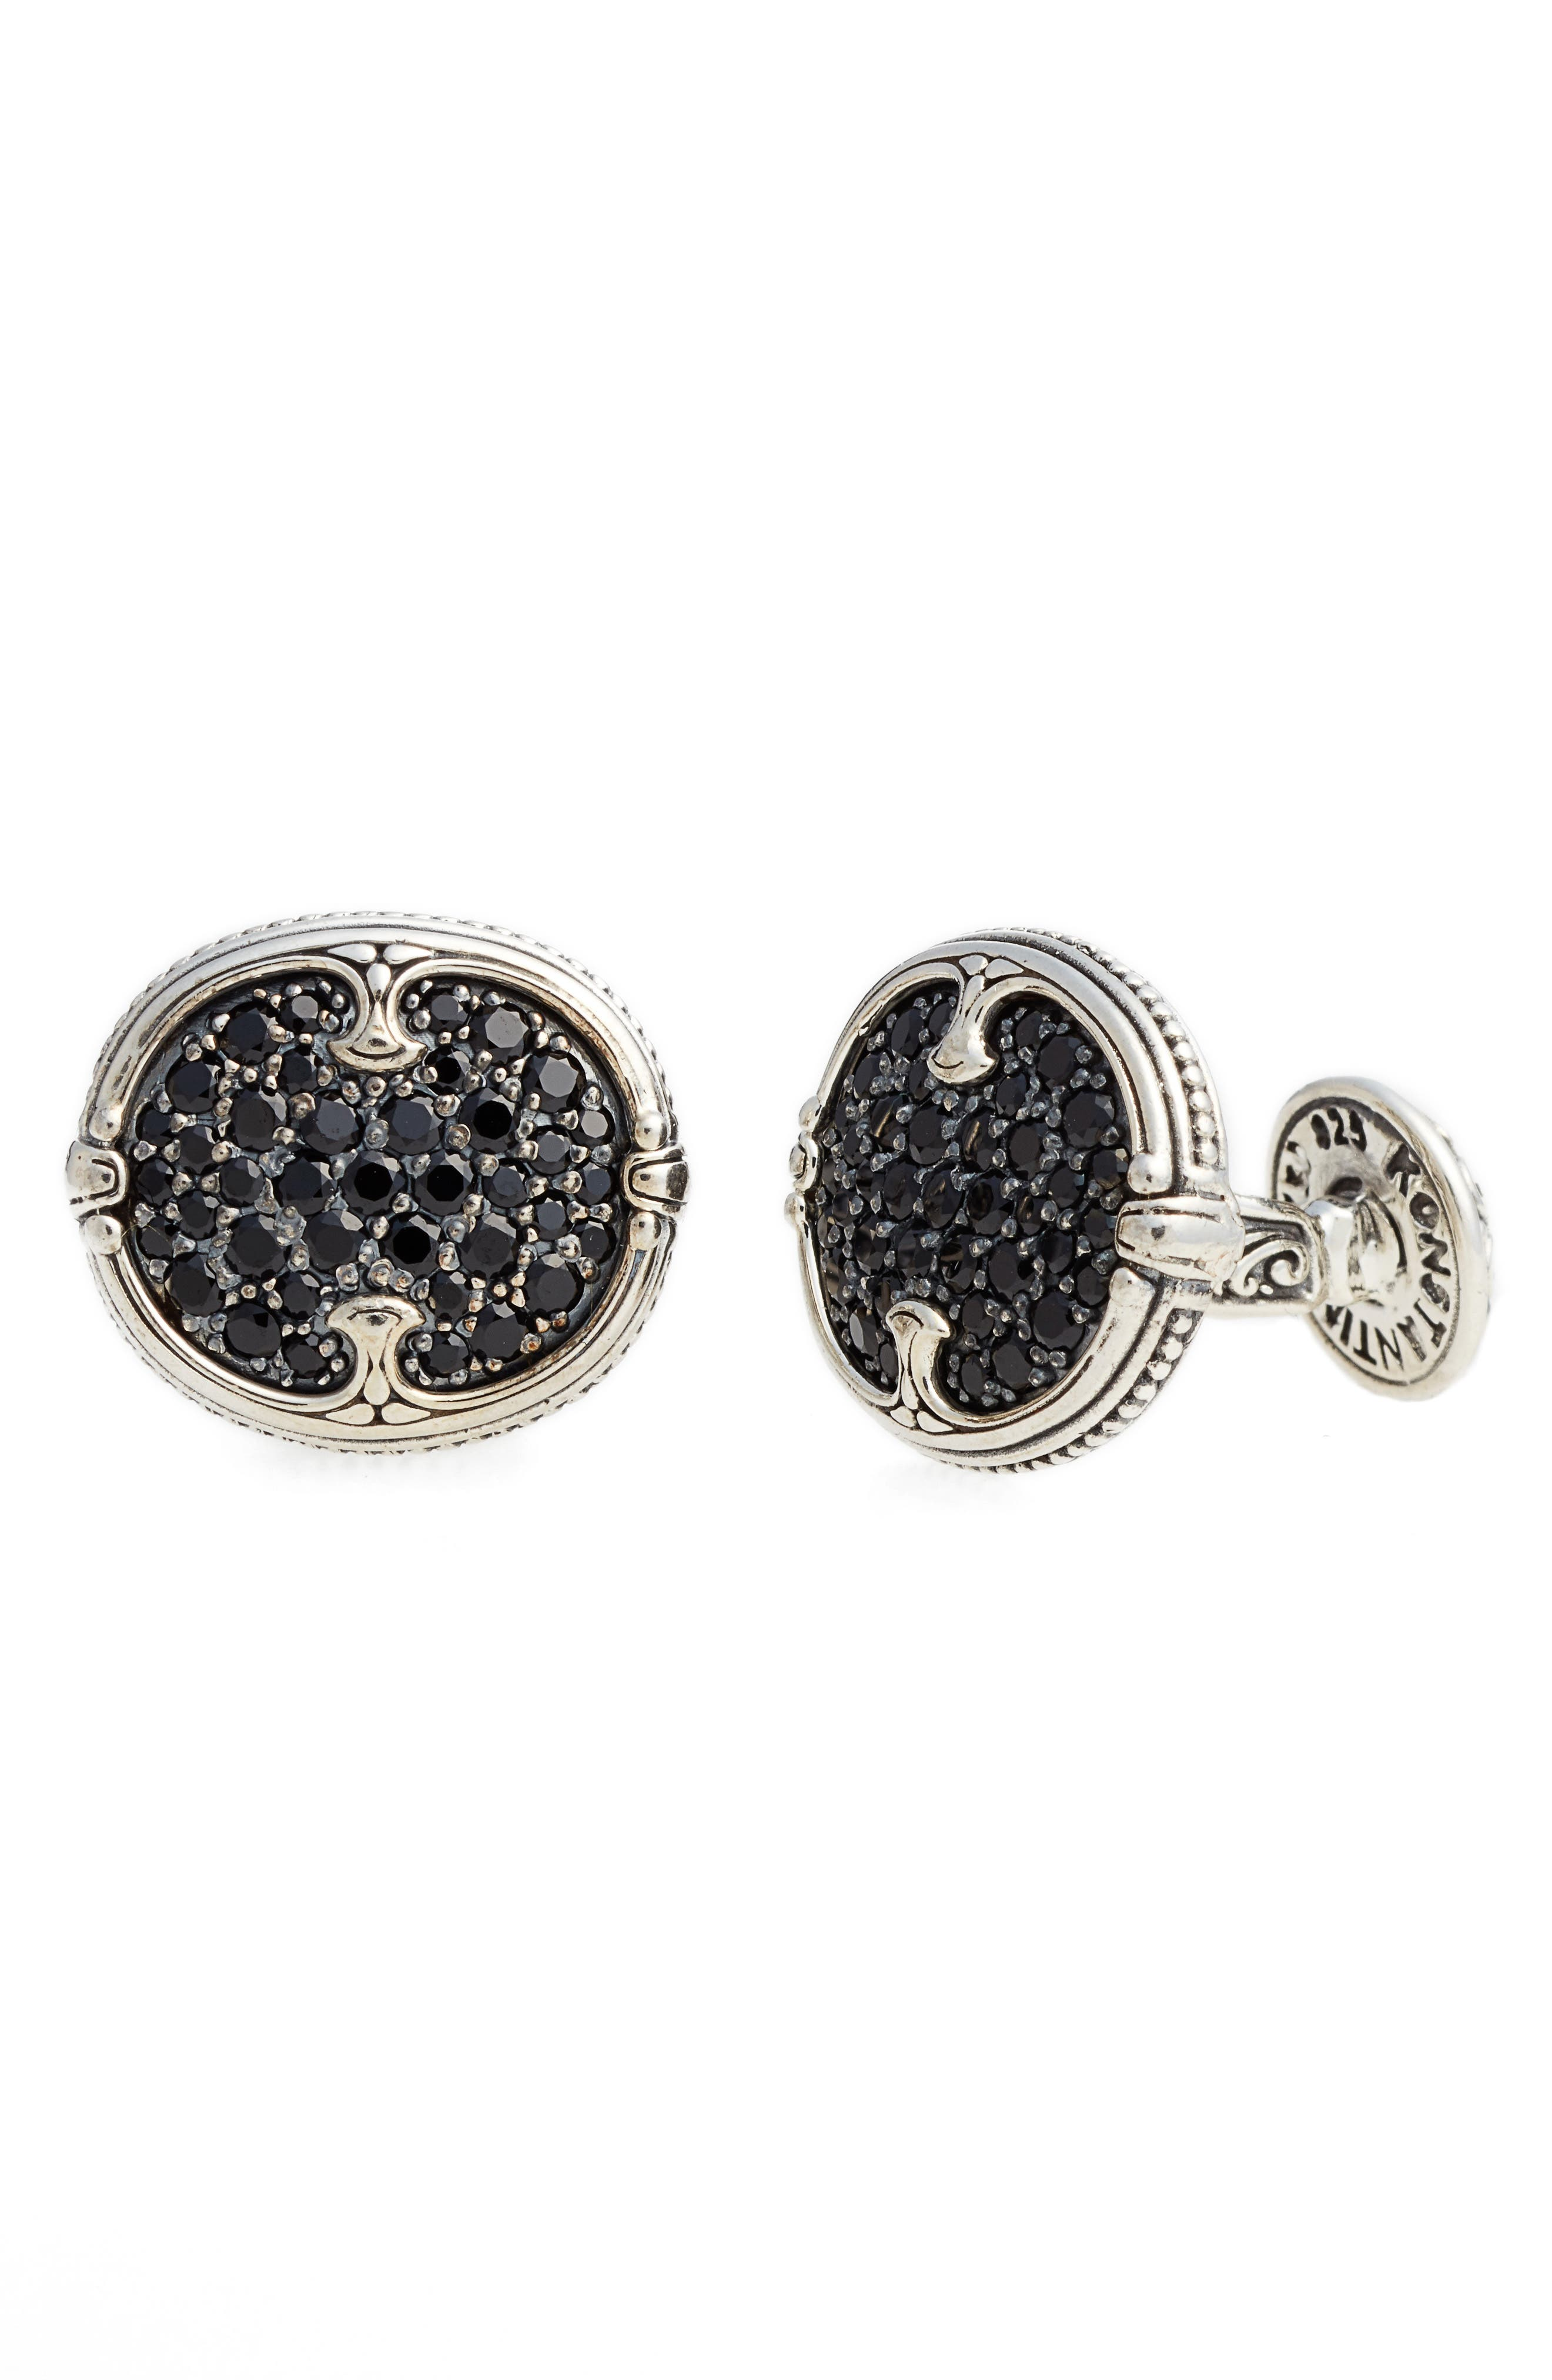 Spinel Oval Cuff Links,                             Main thumbnail 1, color,                             Silver/ Black